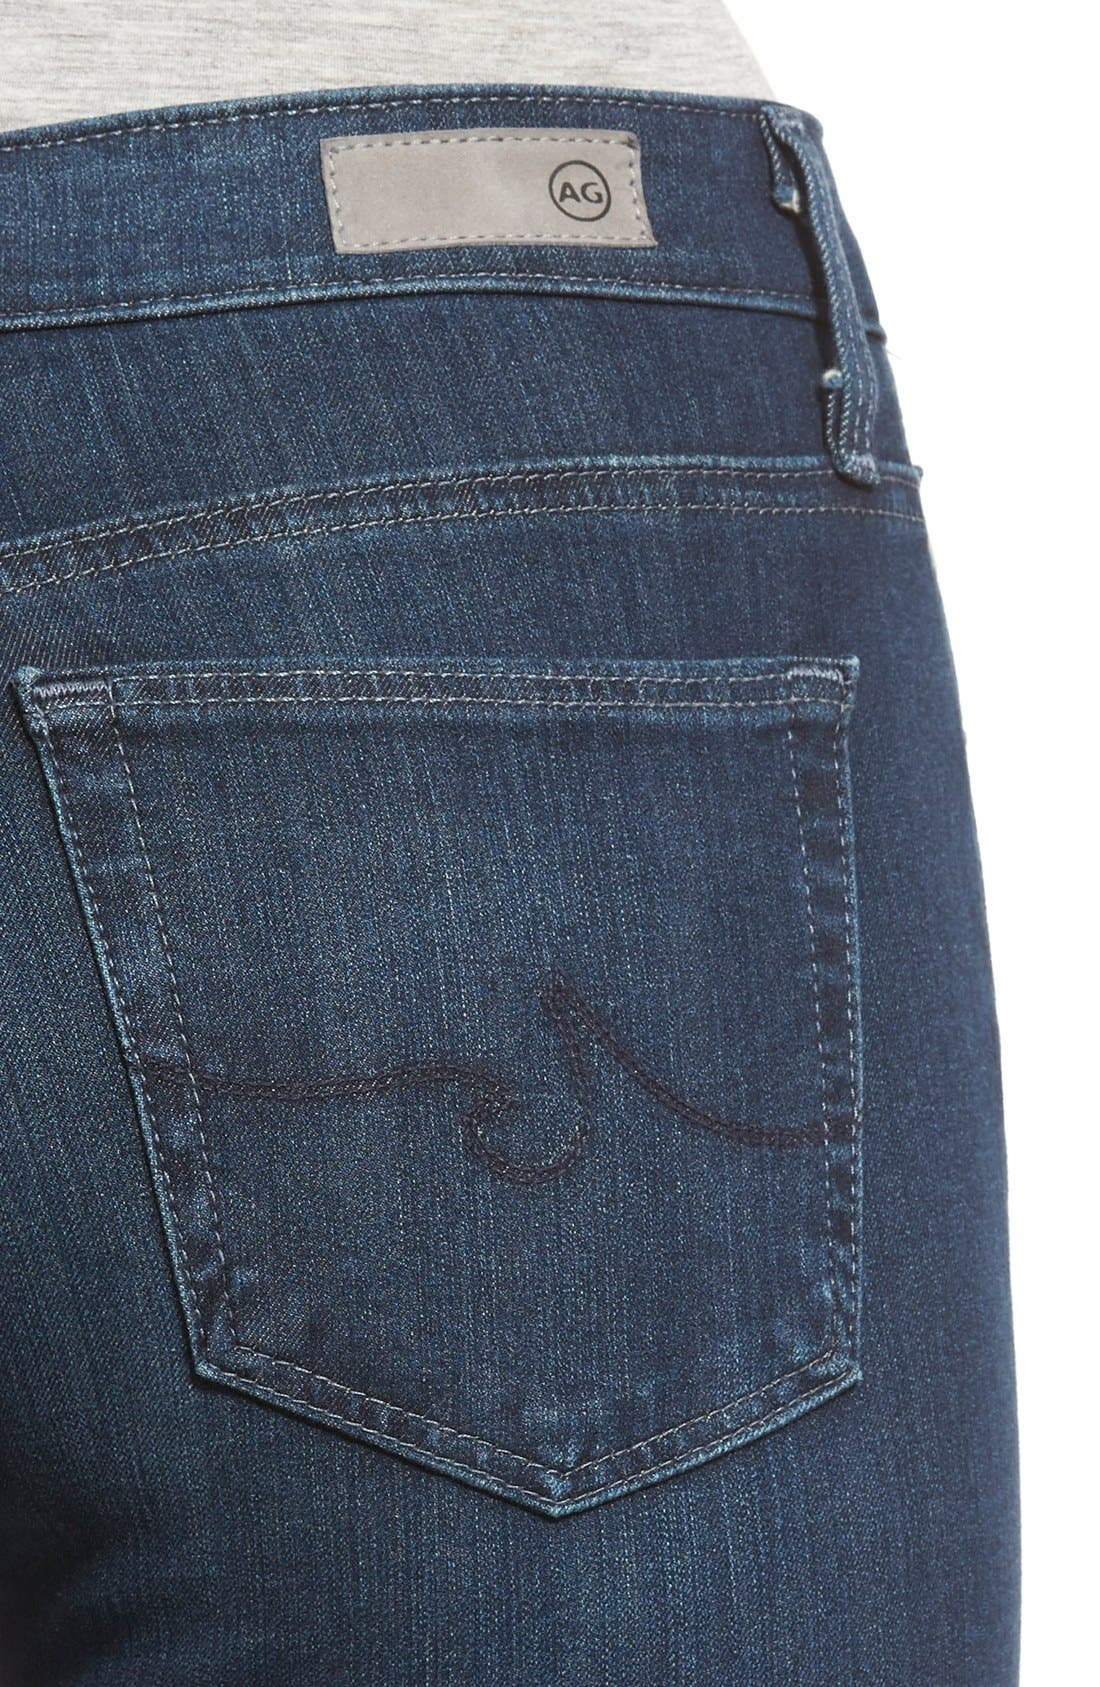 Alternate Image 4  - AG 'The Farrah' High Rise Skinny Jeans (Crater)